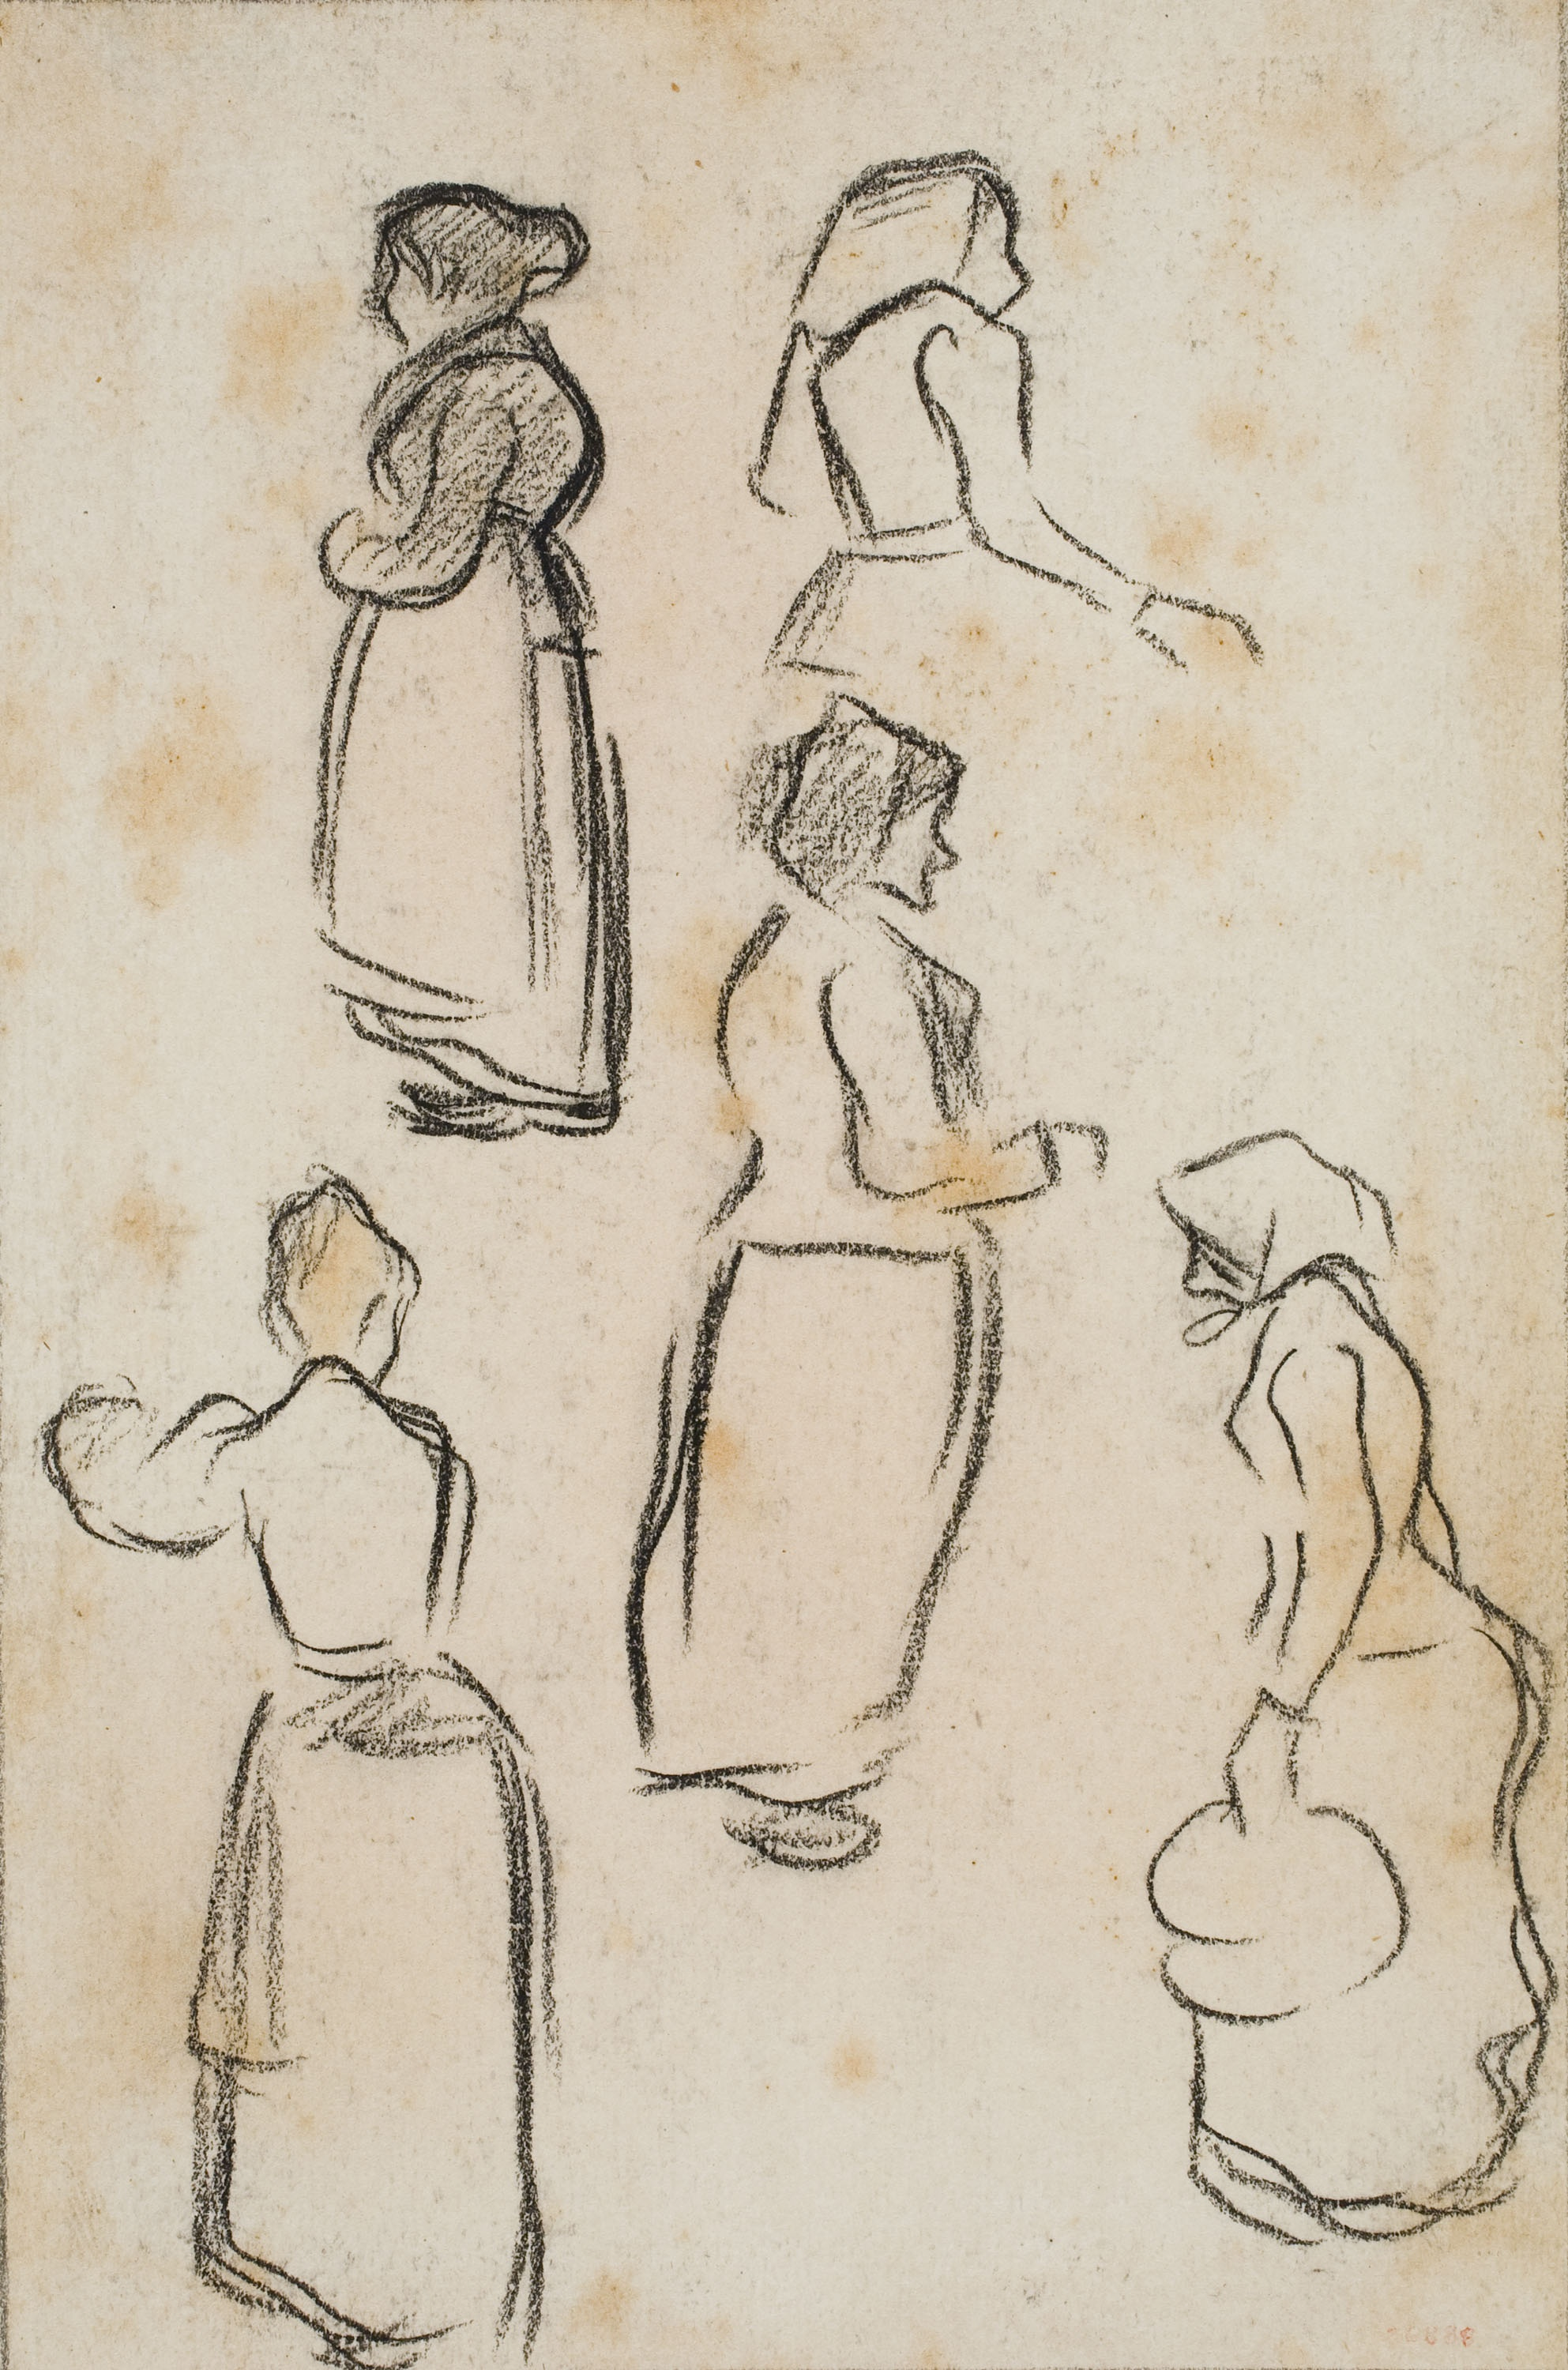 Isidre Nonell - Sketch of women - Circa 1892-1894